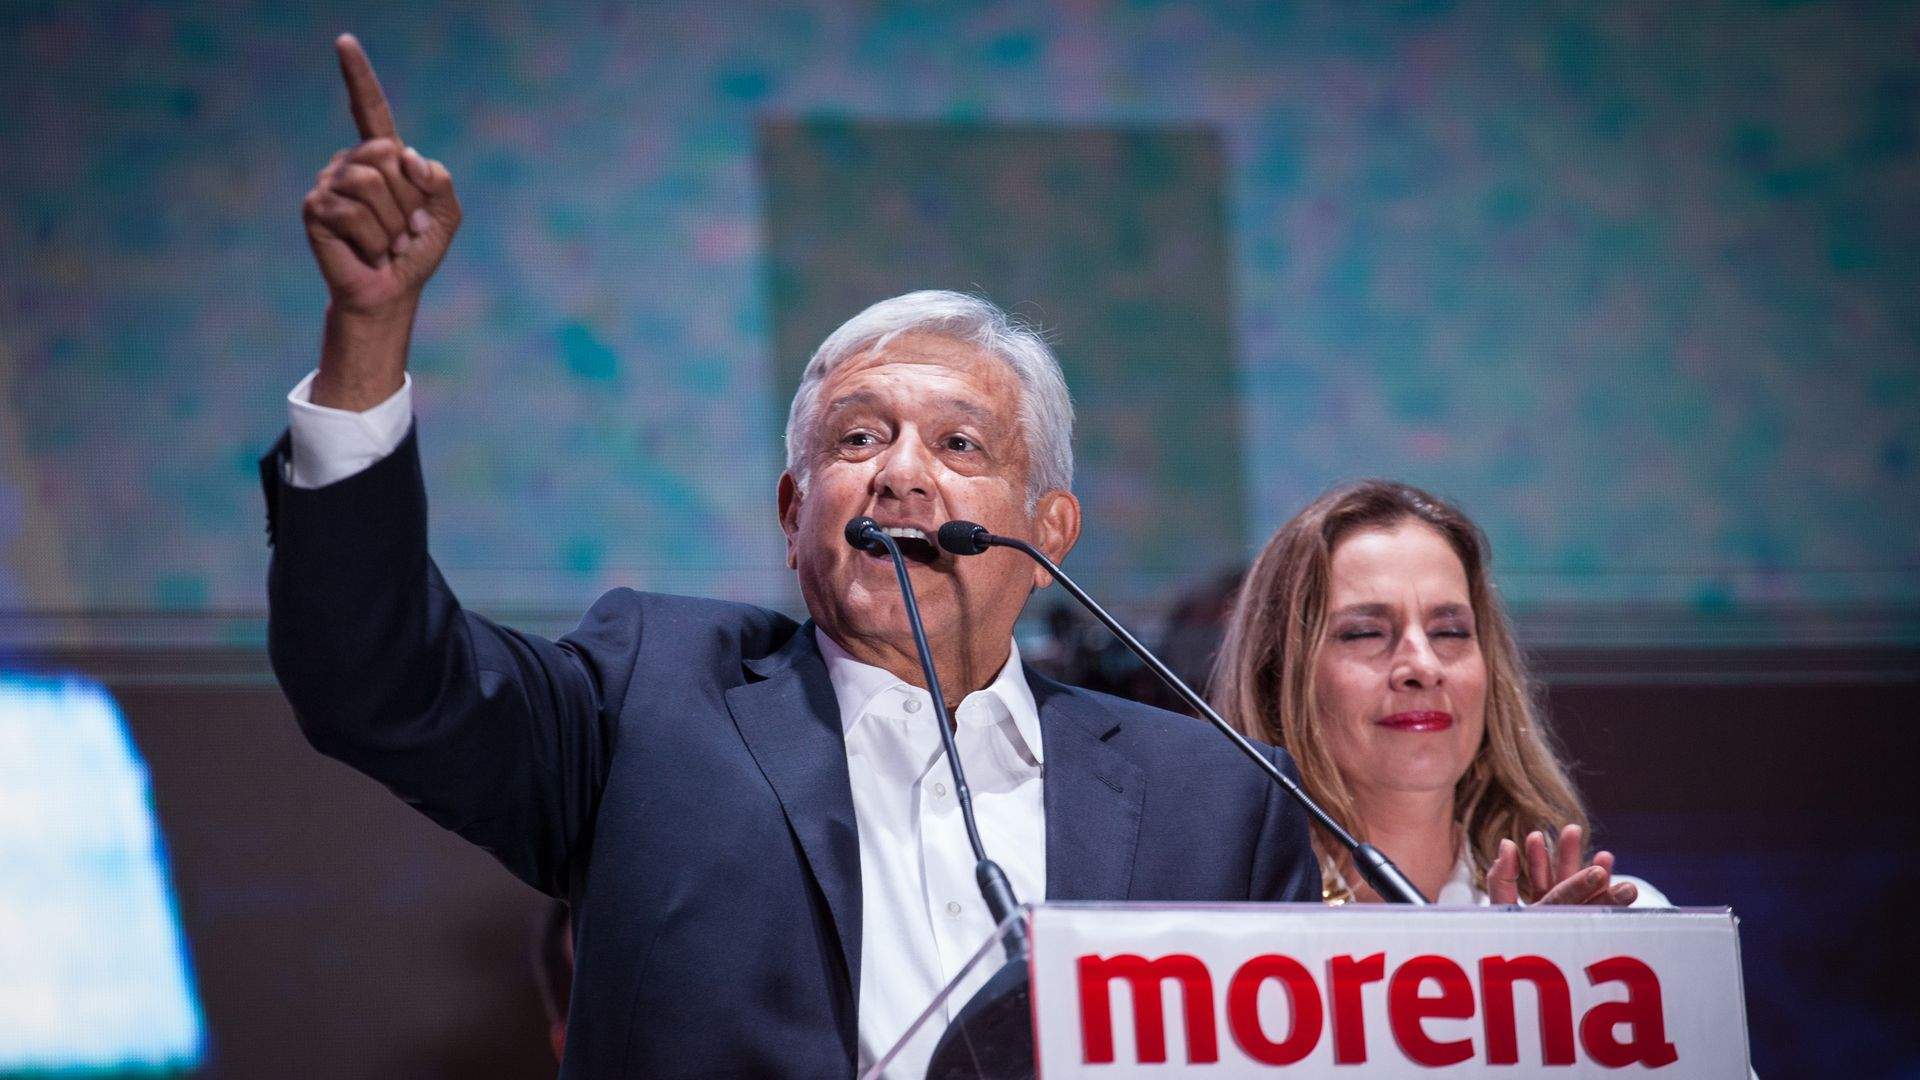 President elect of Mexico, Andres Manuel Lopez Obrador speaks during the celebration event, at the end of the Mexico 2018 Presidential Election on July 1, 2018 in Mexico City, Mexico.